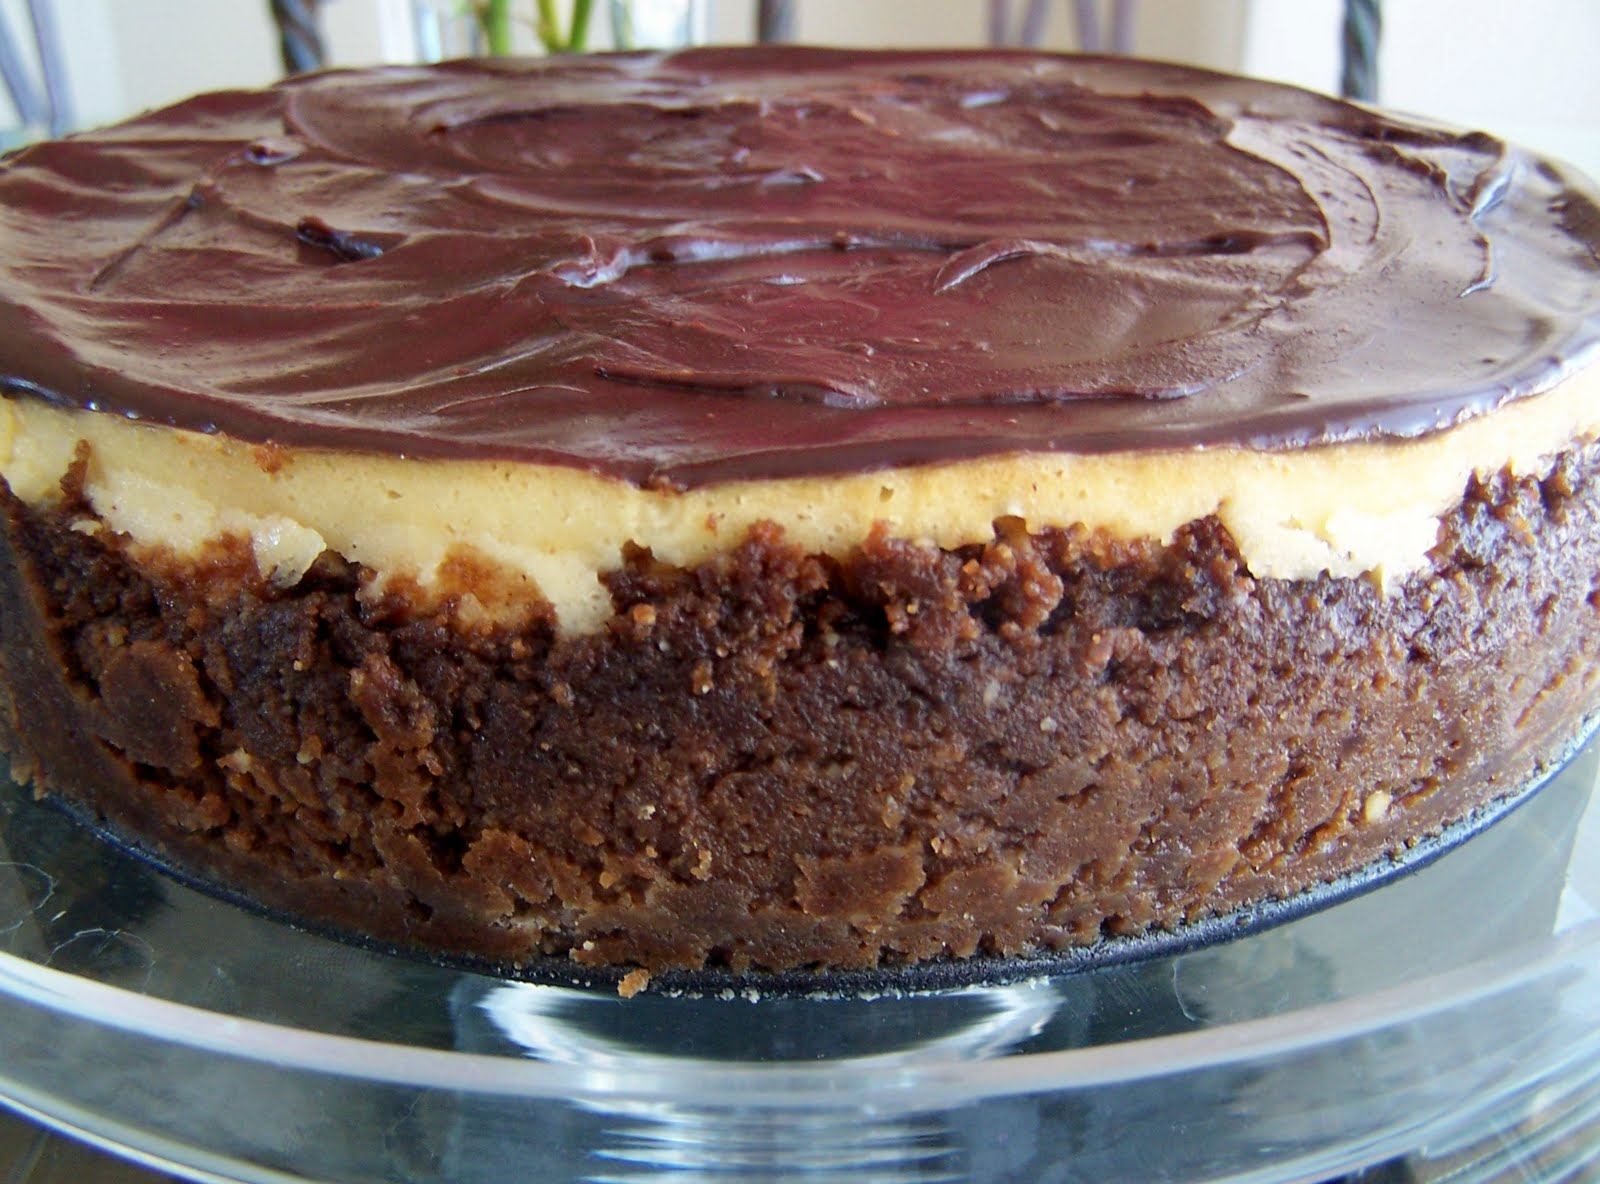 Becky Bakes: Dulce de' Leche Cheesecake with a Chili Chocolate Ganache